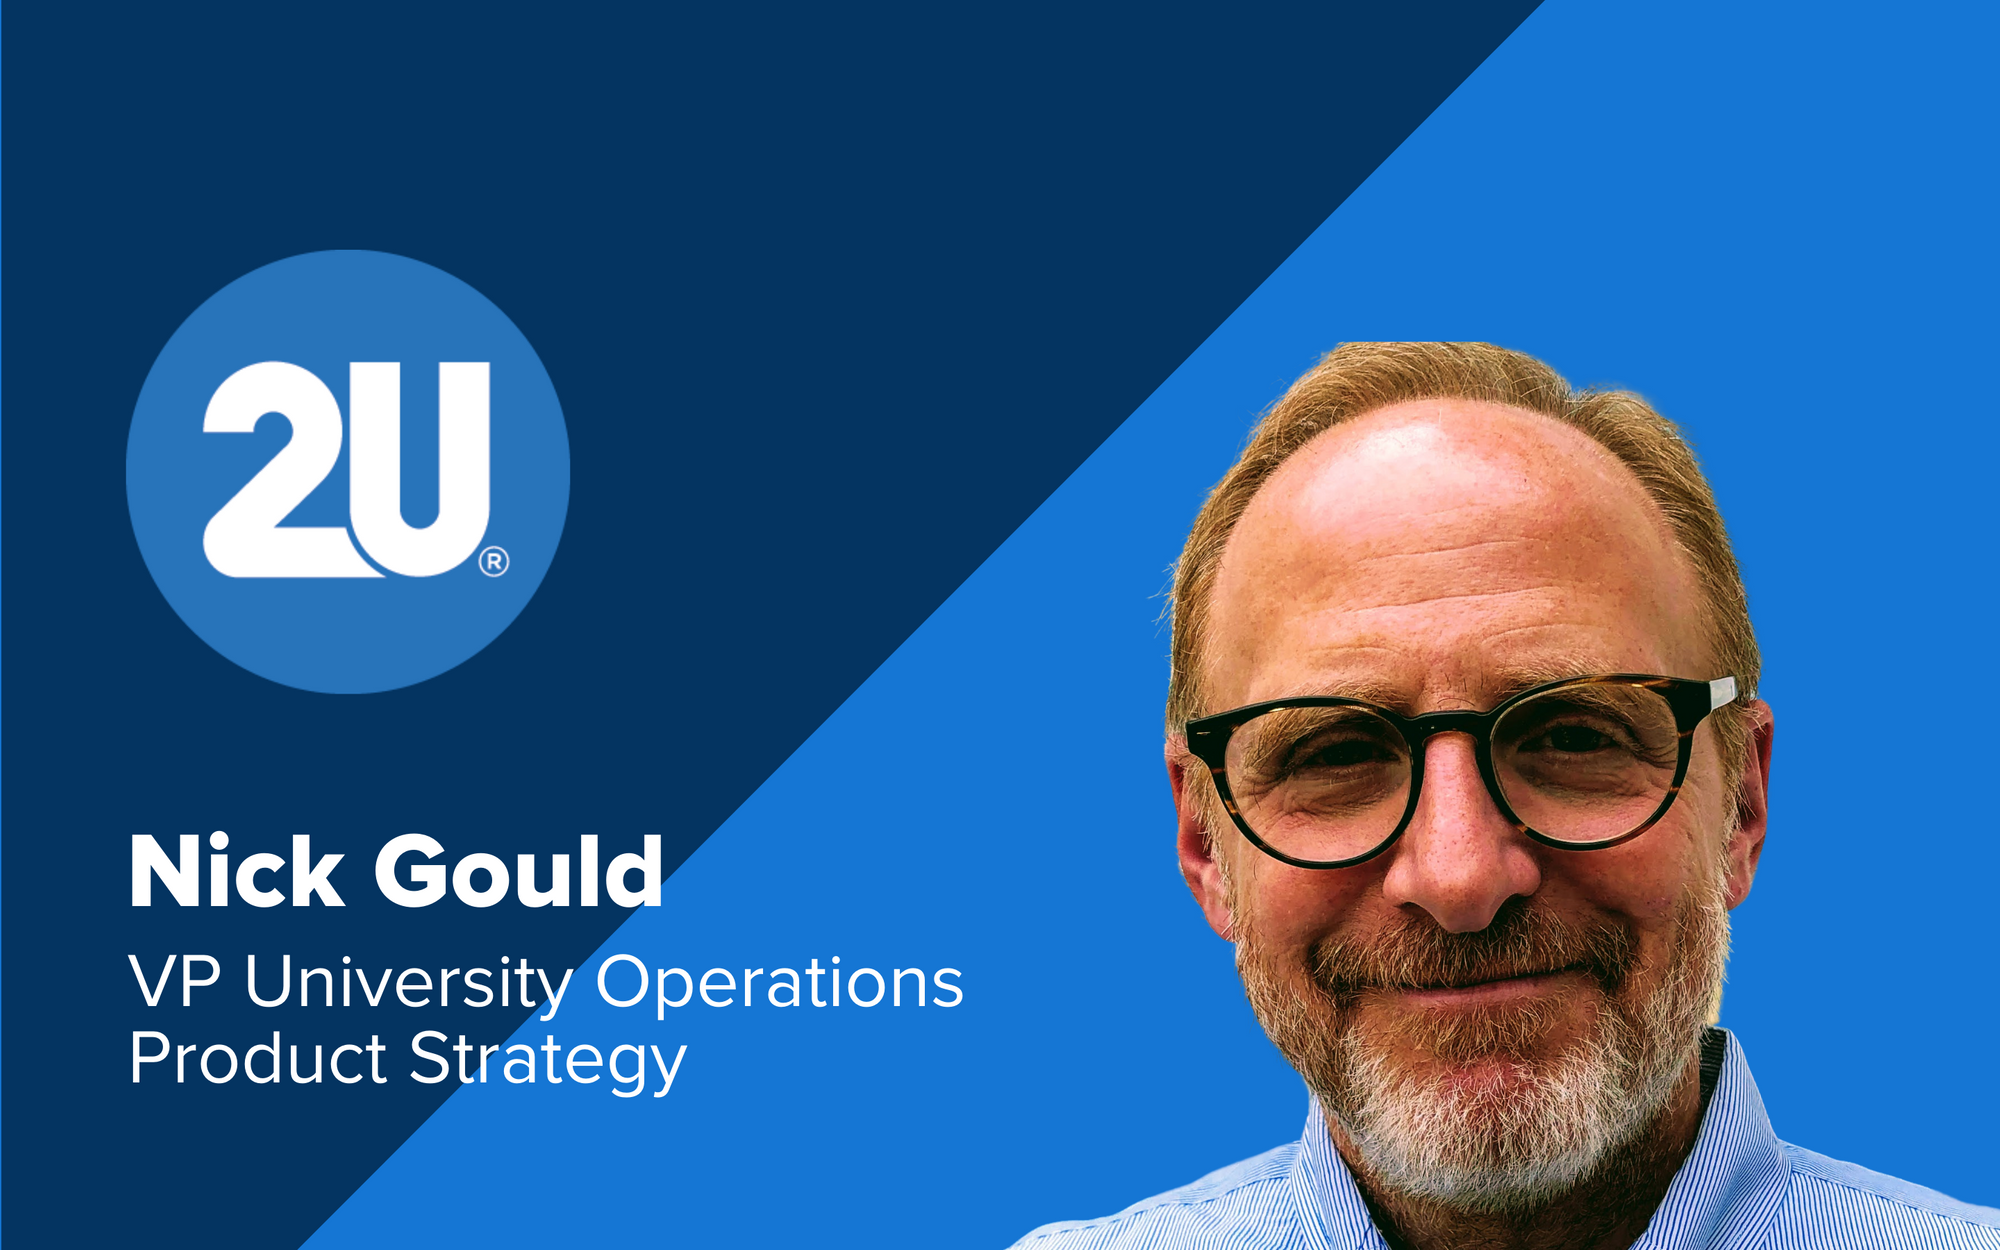 Nick Gould, Vice President of University Operations Product Strategy